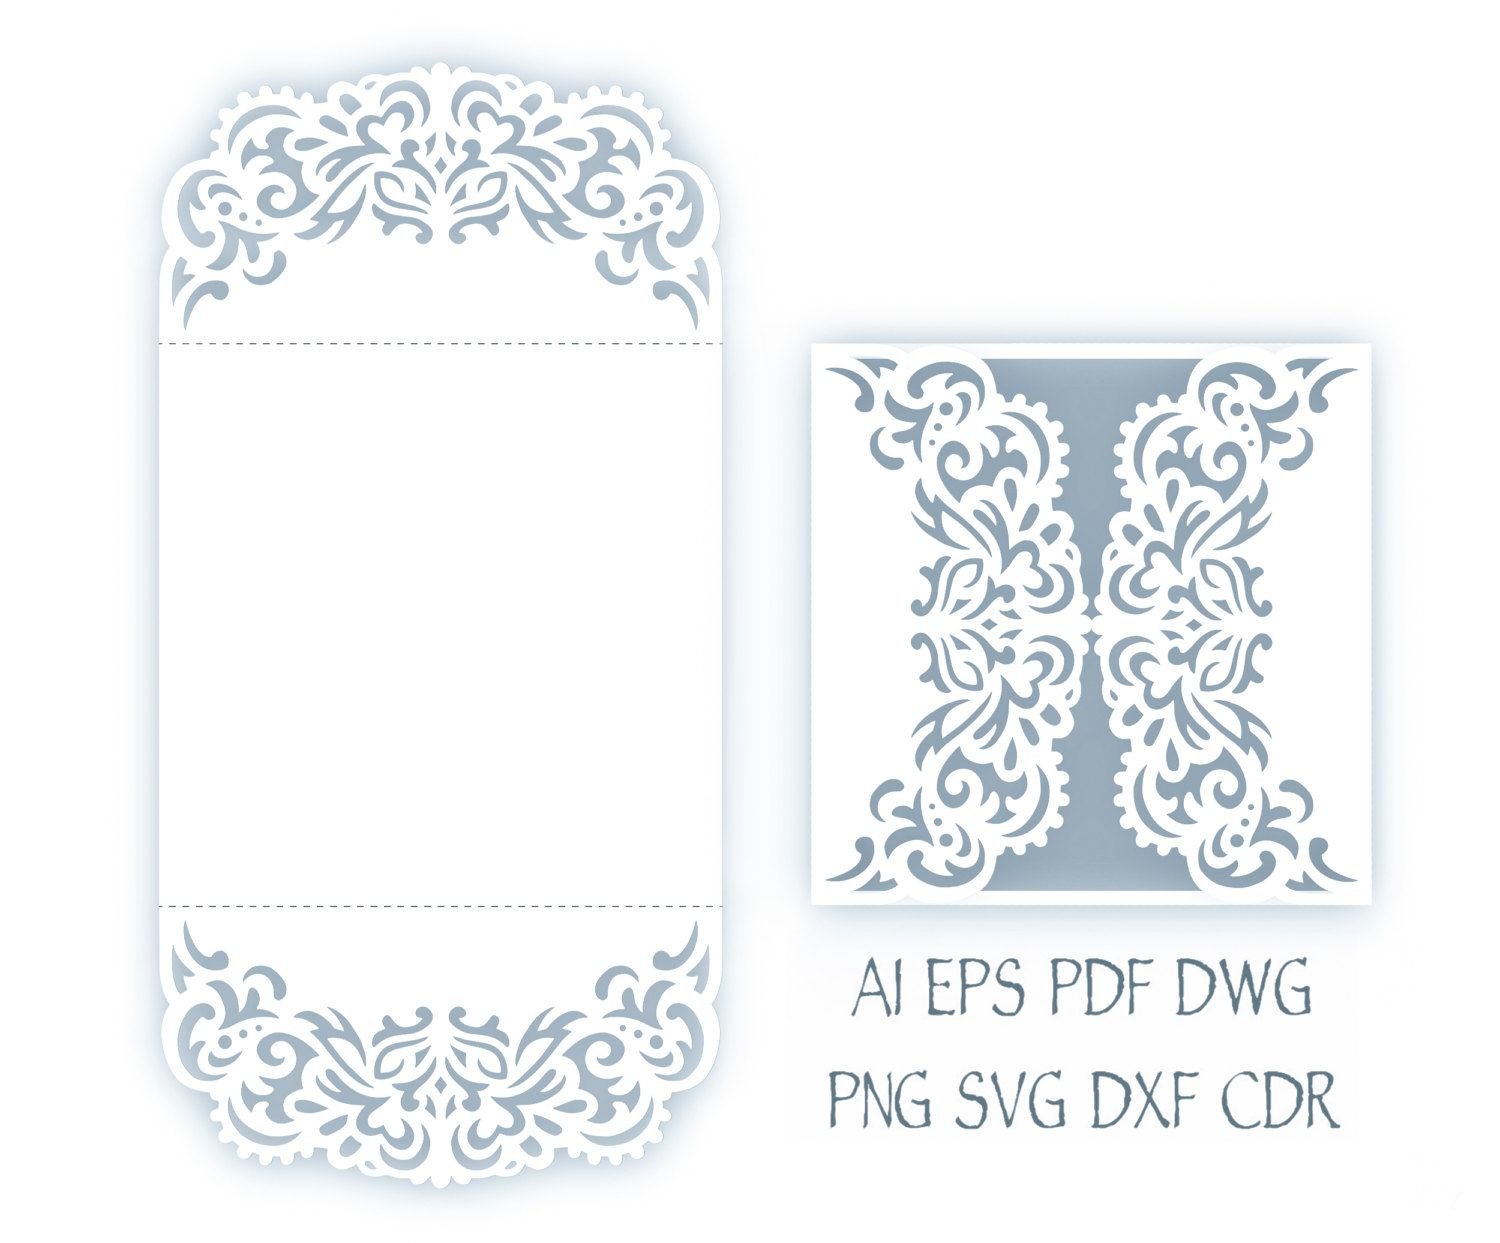 Svg Wedding Invitation 5x5 Gate Fold Card Template Quinceanera